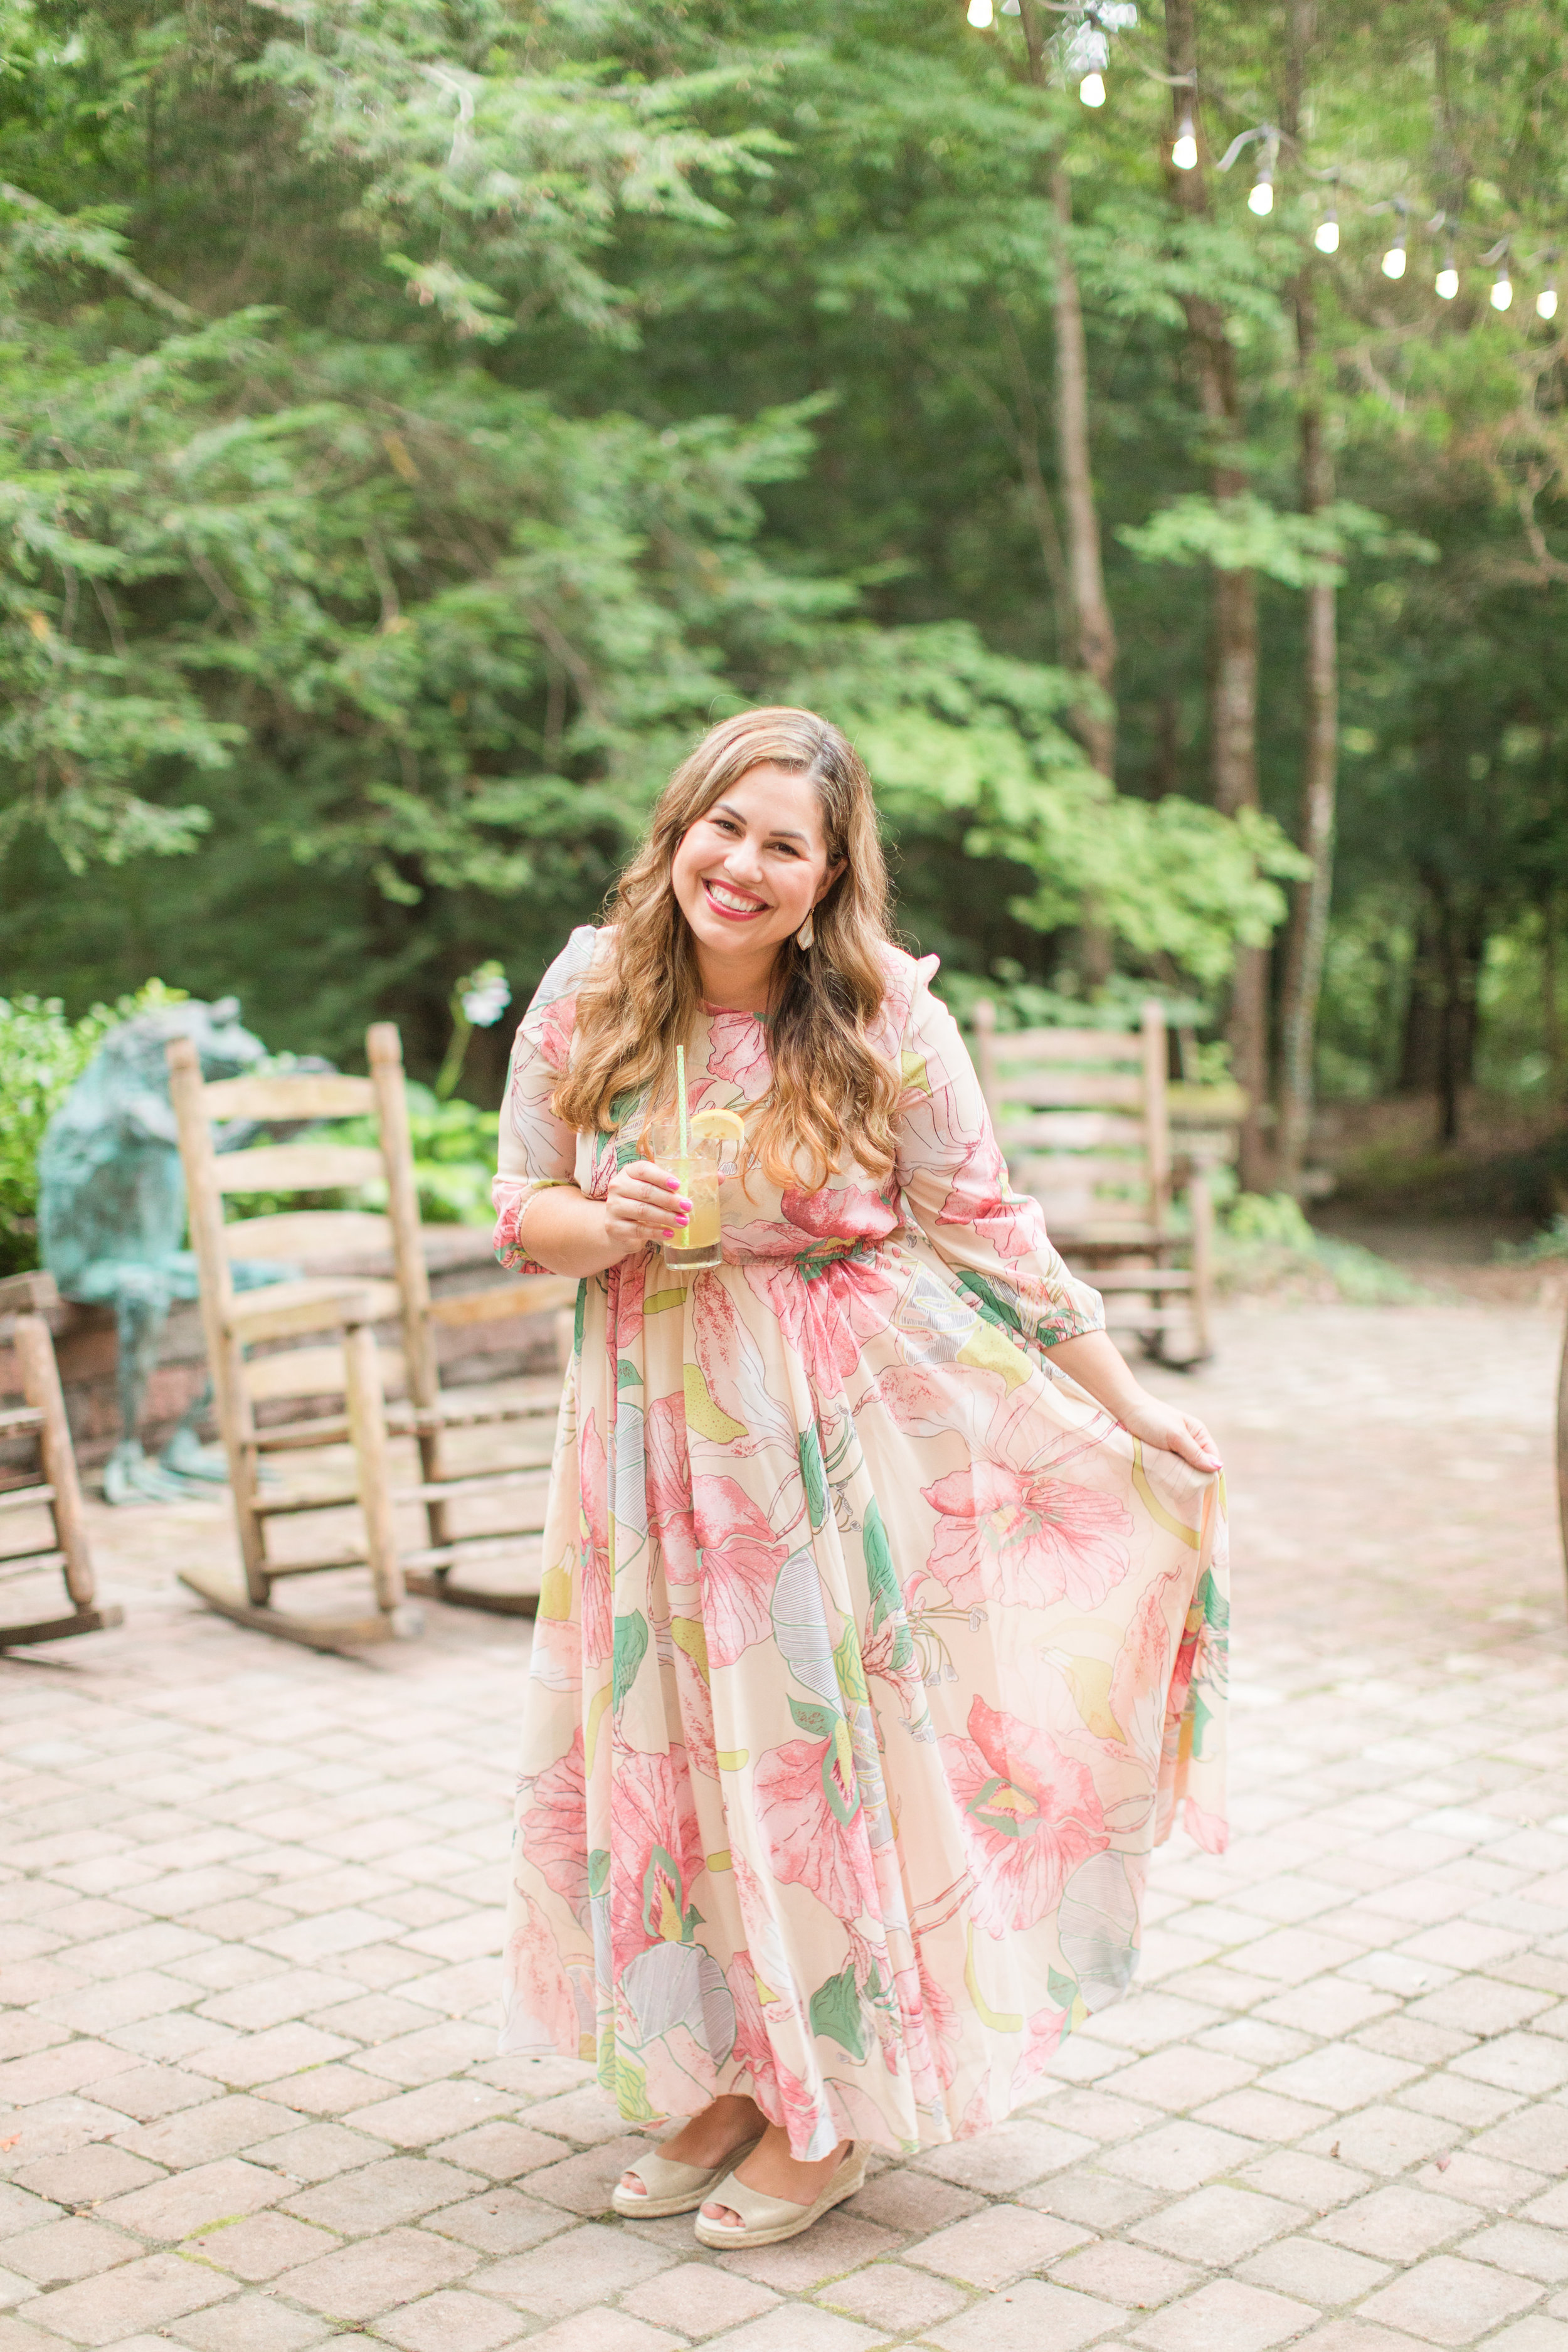 Inspired Retreat - Amber Housley- Anna Filly Photography - Conference for creative businesses - Day One-131.jpg